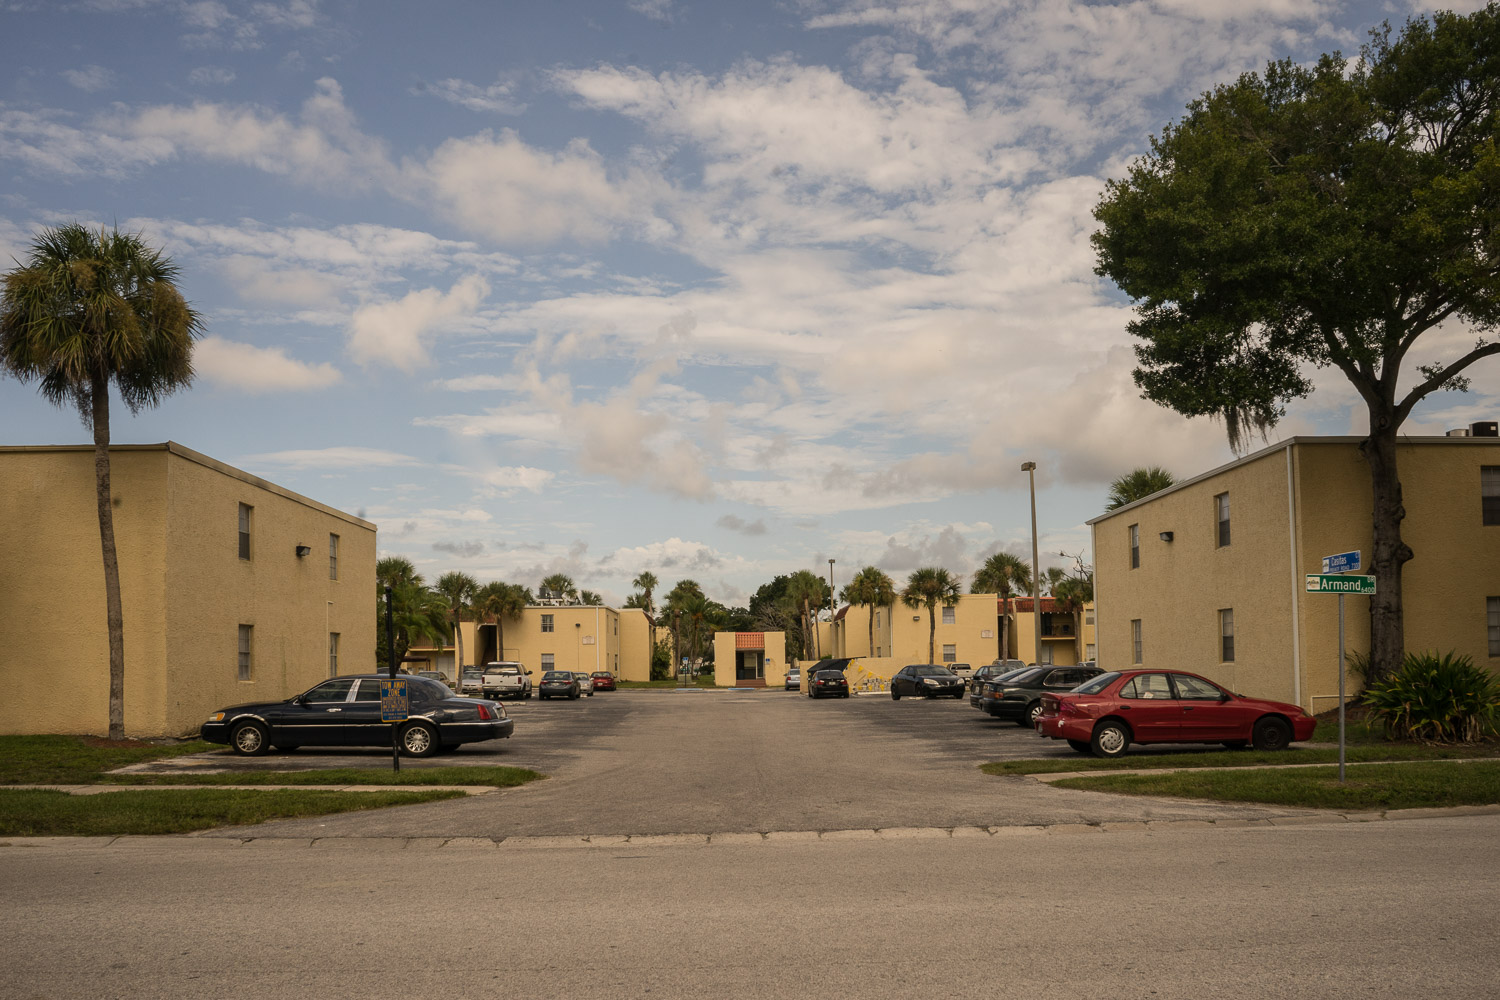 Casitas Court, Tampa, Florida where Cristine Carreras (67) moved to in 2008 having spent a lot of her life in the South Bronx, New York City.